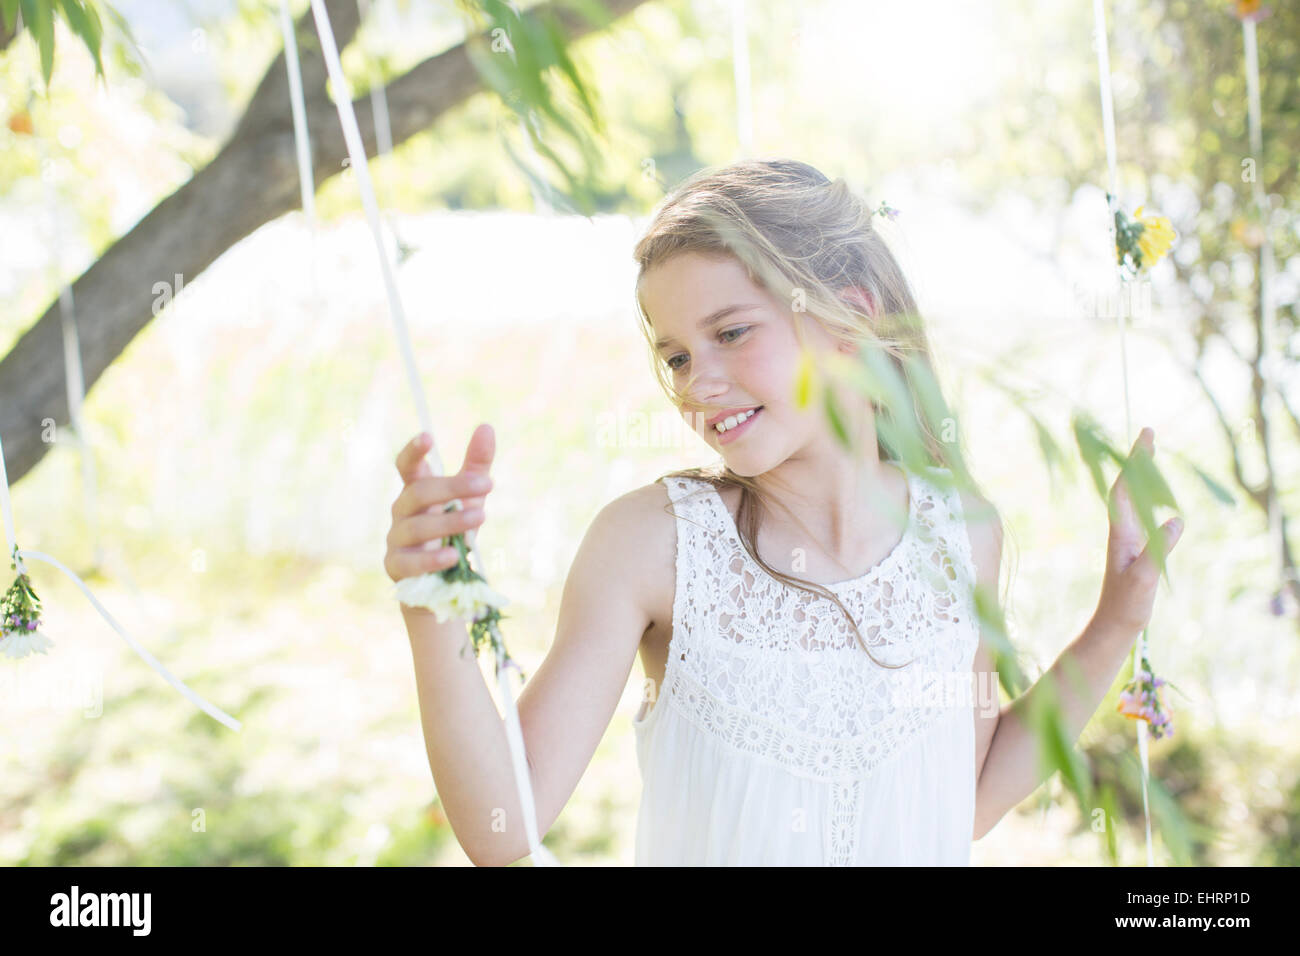 Smiling bridesmaid playing with decorations in domestic garden during wedding reception - Stock Image